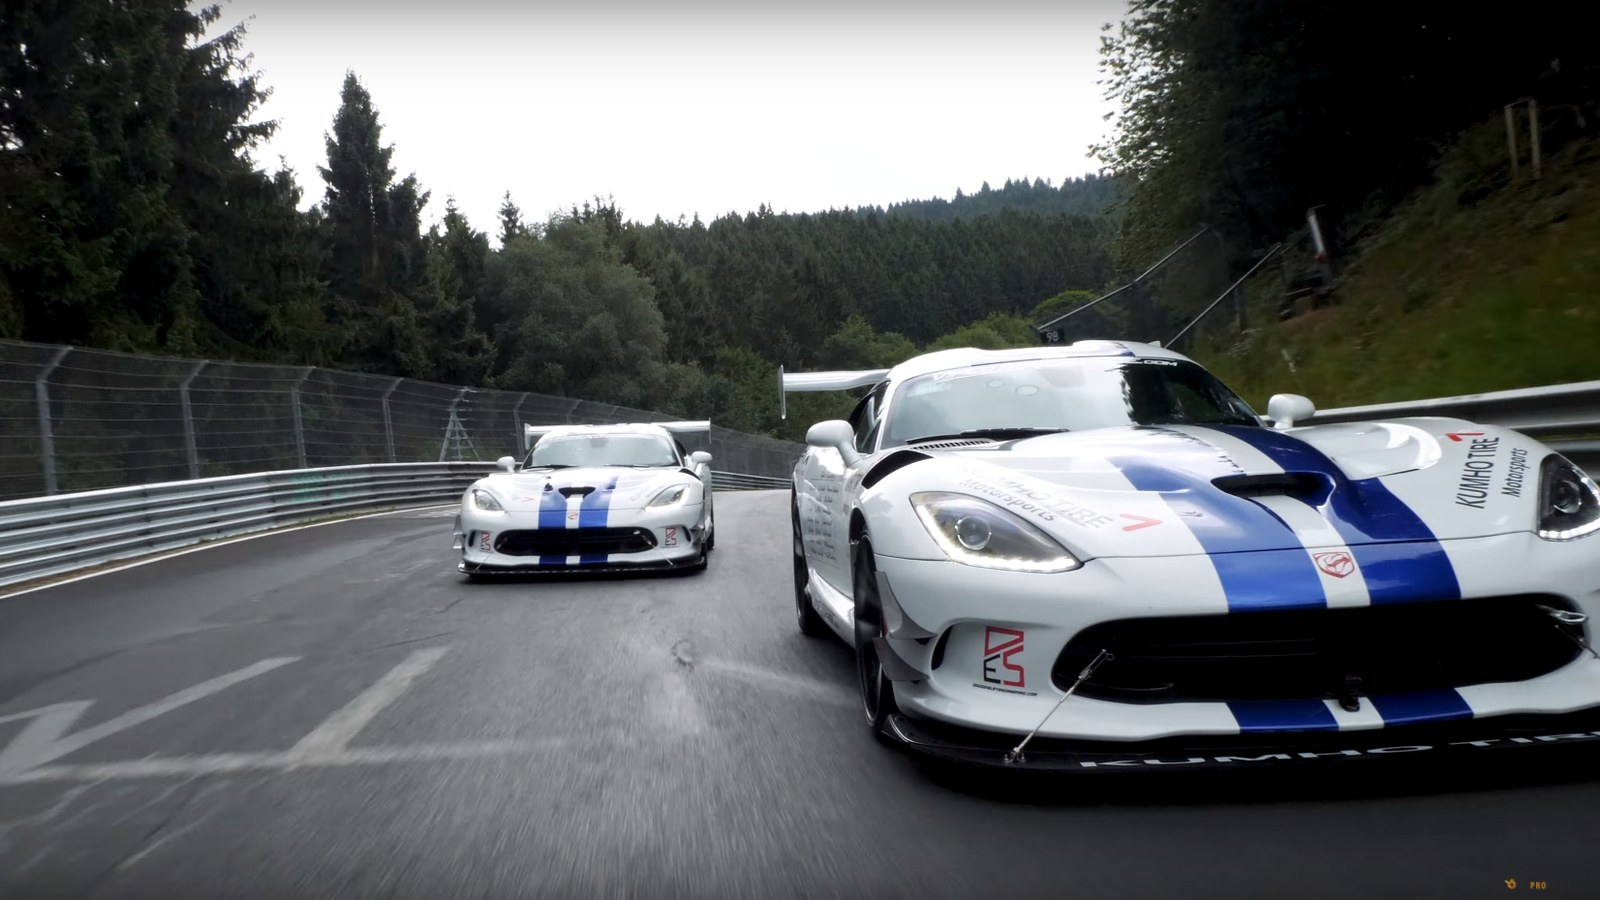 Over The Summer, Some Folks Got Together An Attempt To Set A Privately  Sponsored Nürburgring Lap Record In A Dodge Viper ACR. They Wanted To Give  The Car A ...